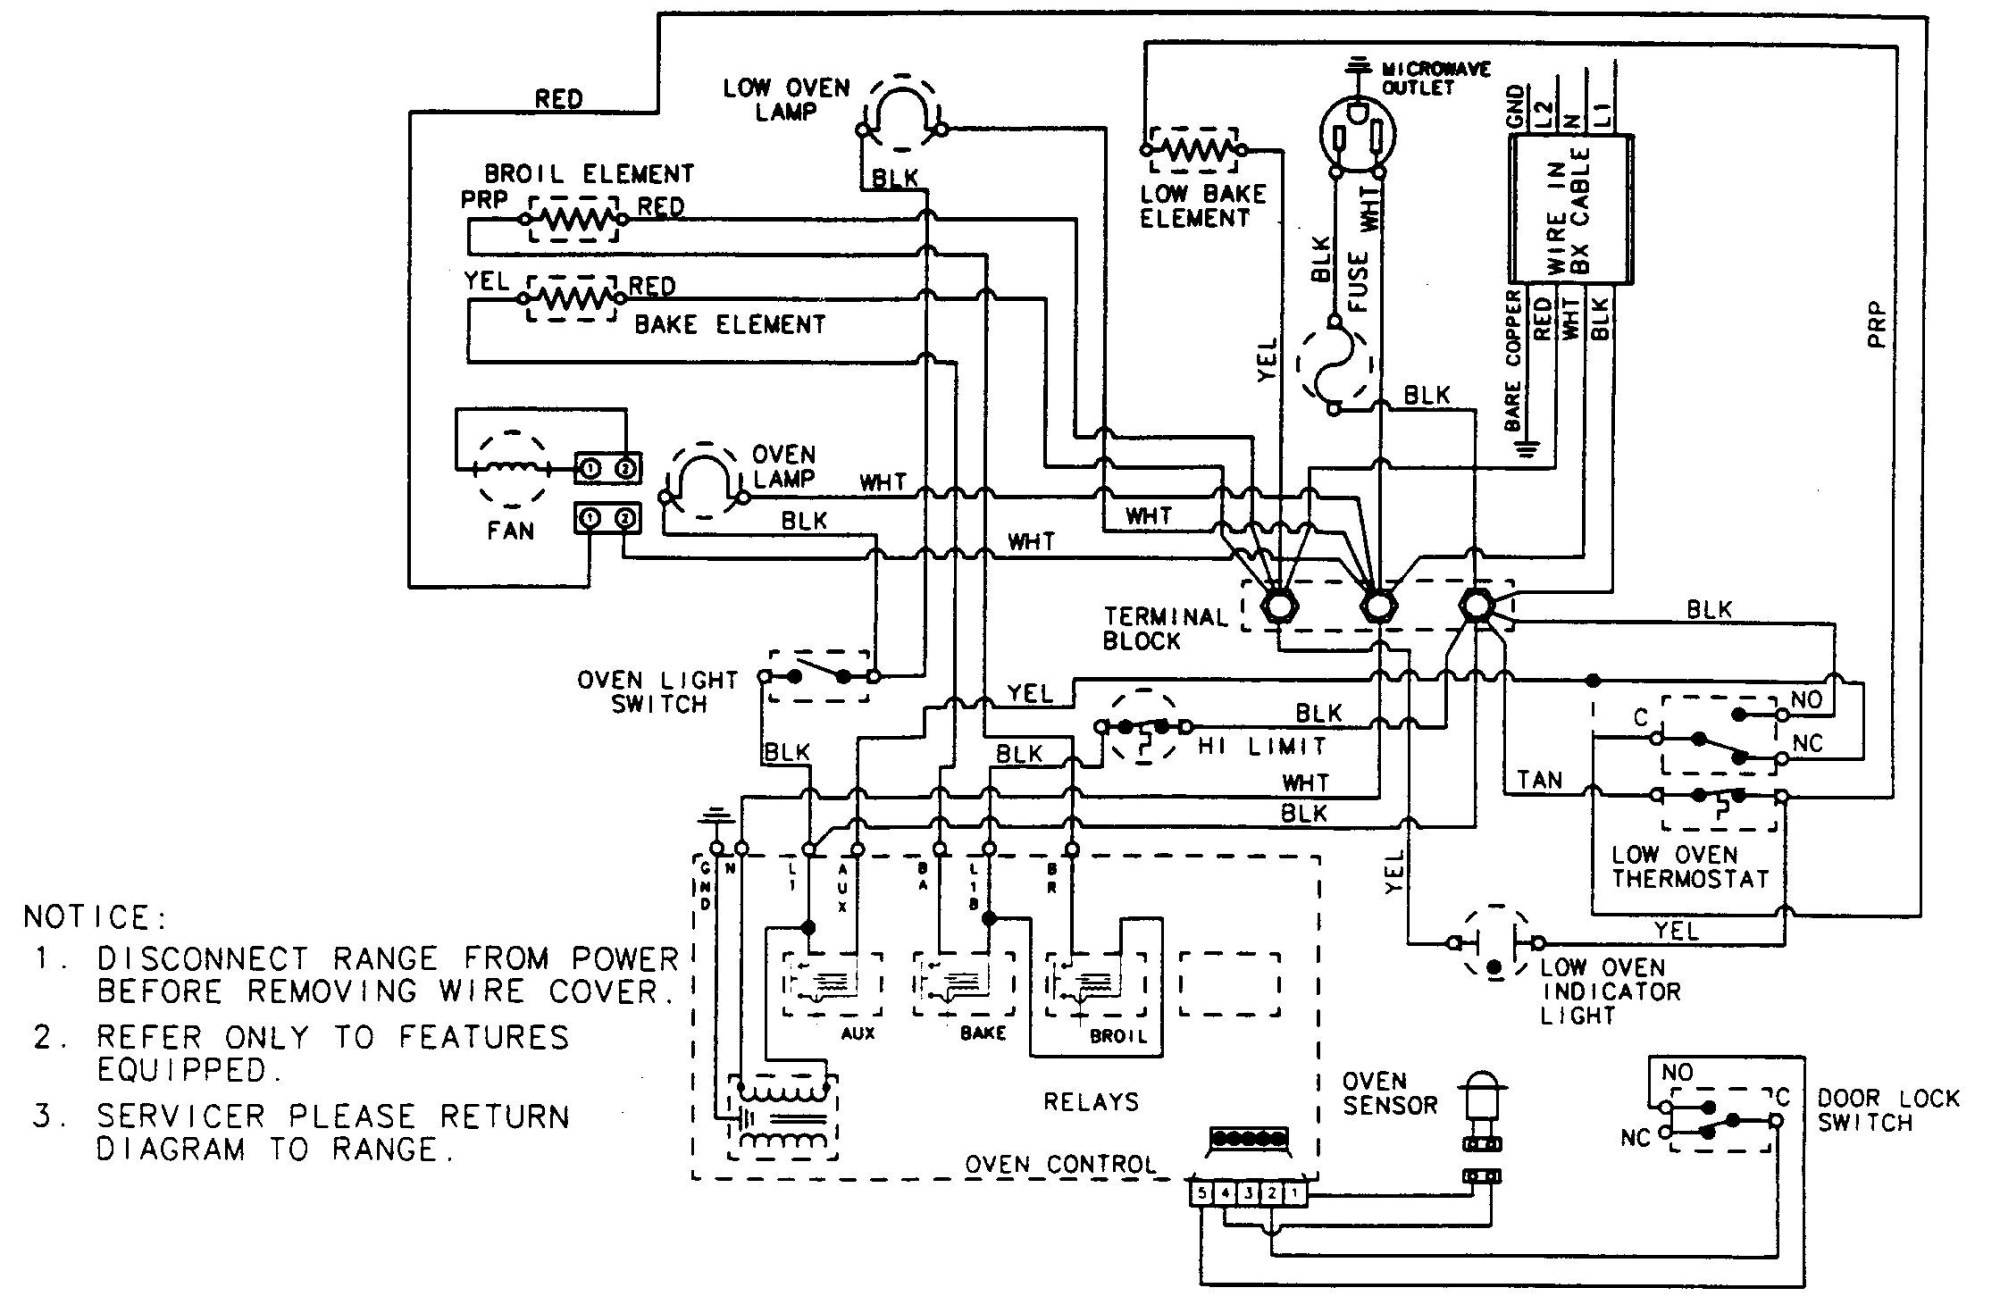 hight resolution of wiring diagram for ge wall oven wiring diagram forwardge wall oven wiring diagram wiring diagram forward